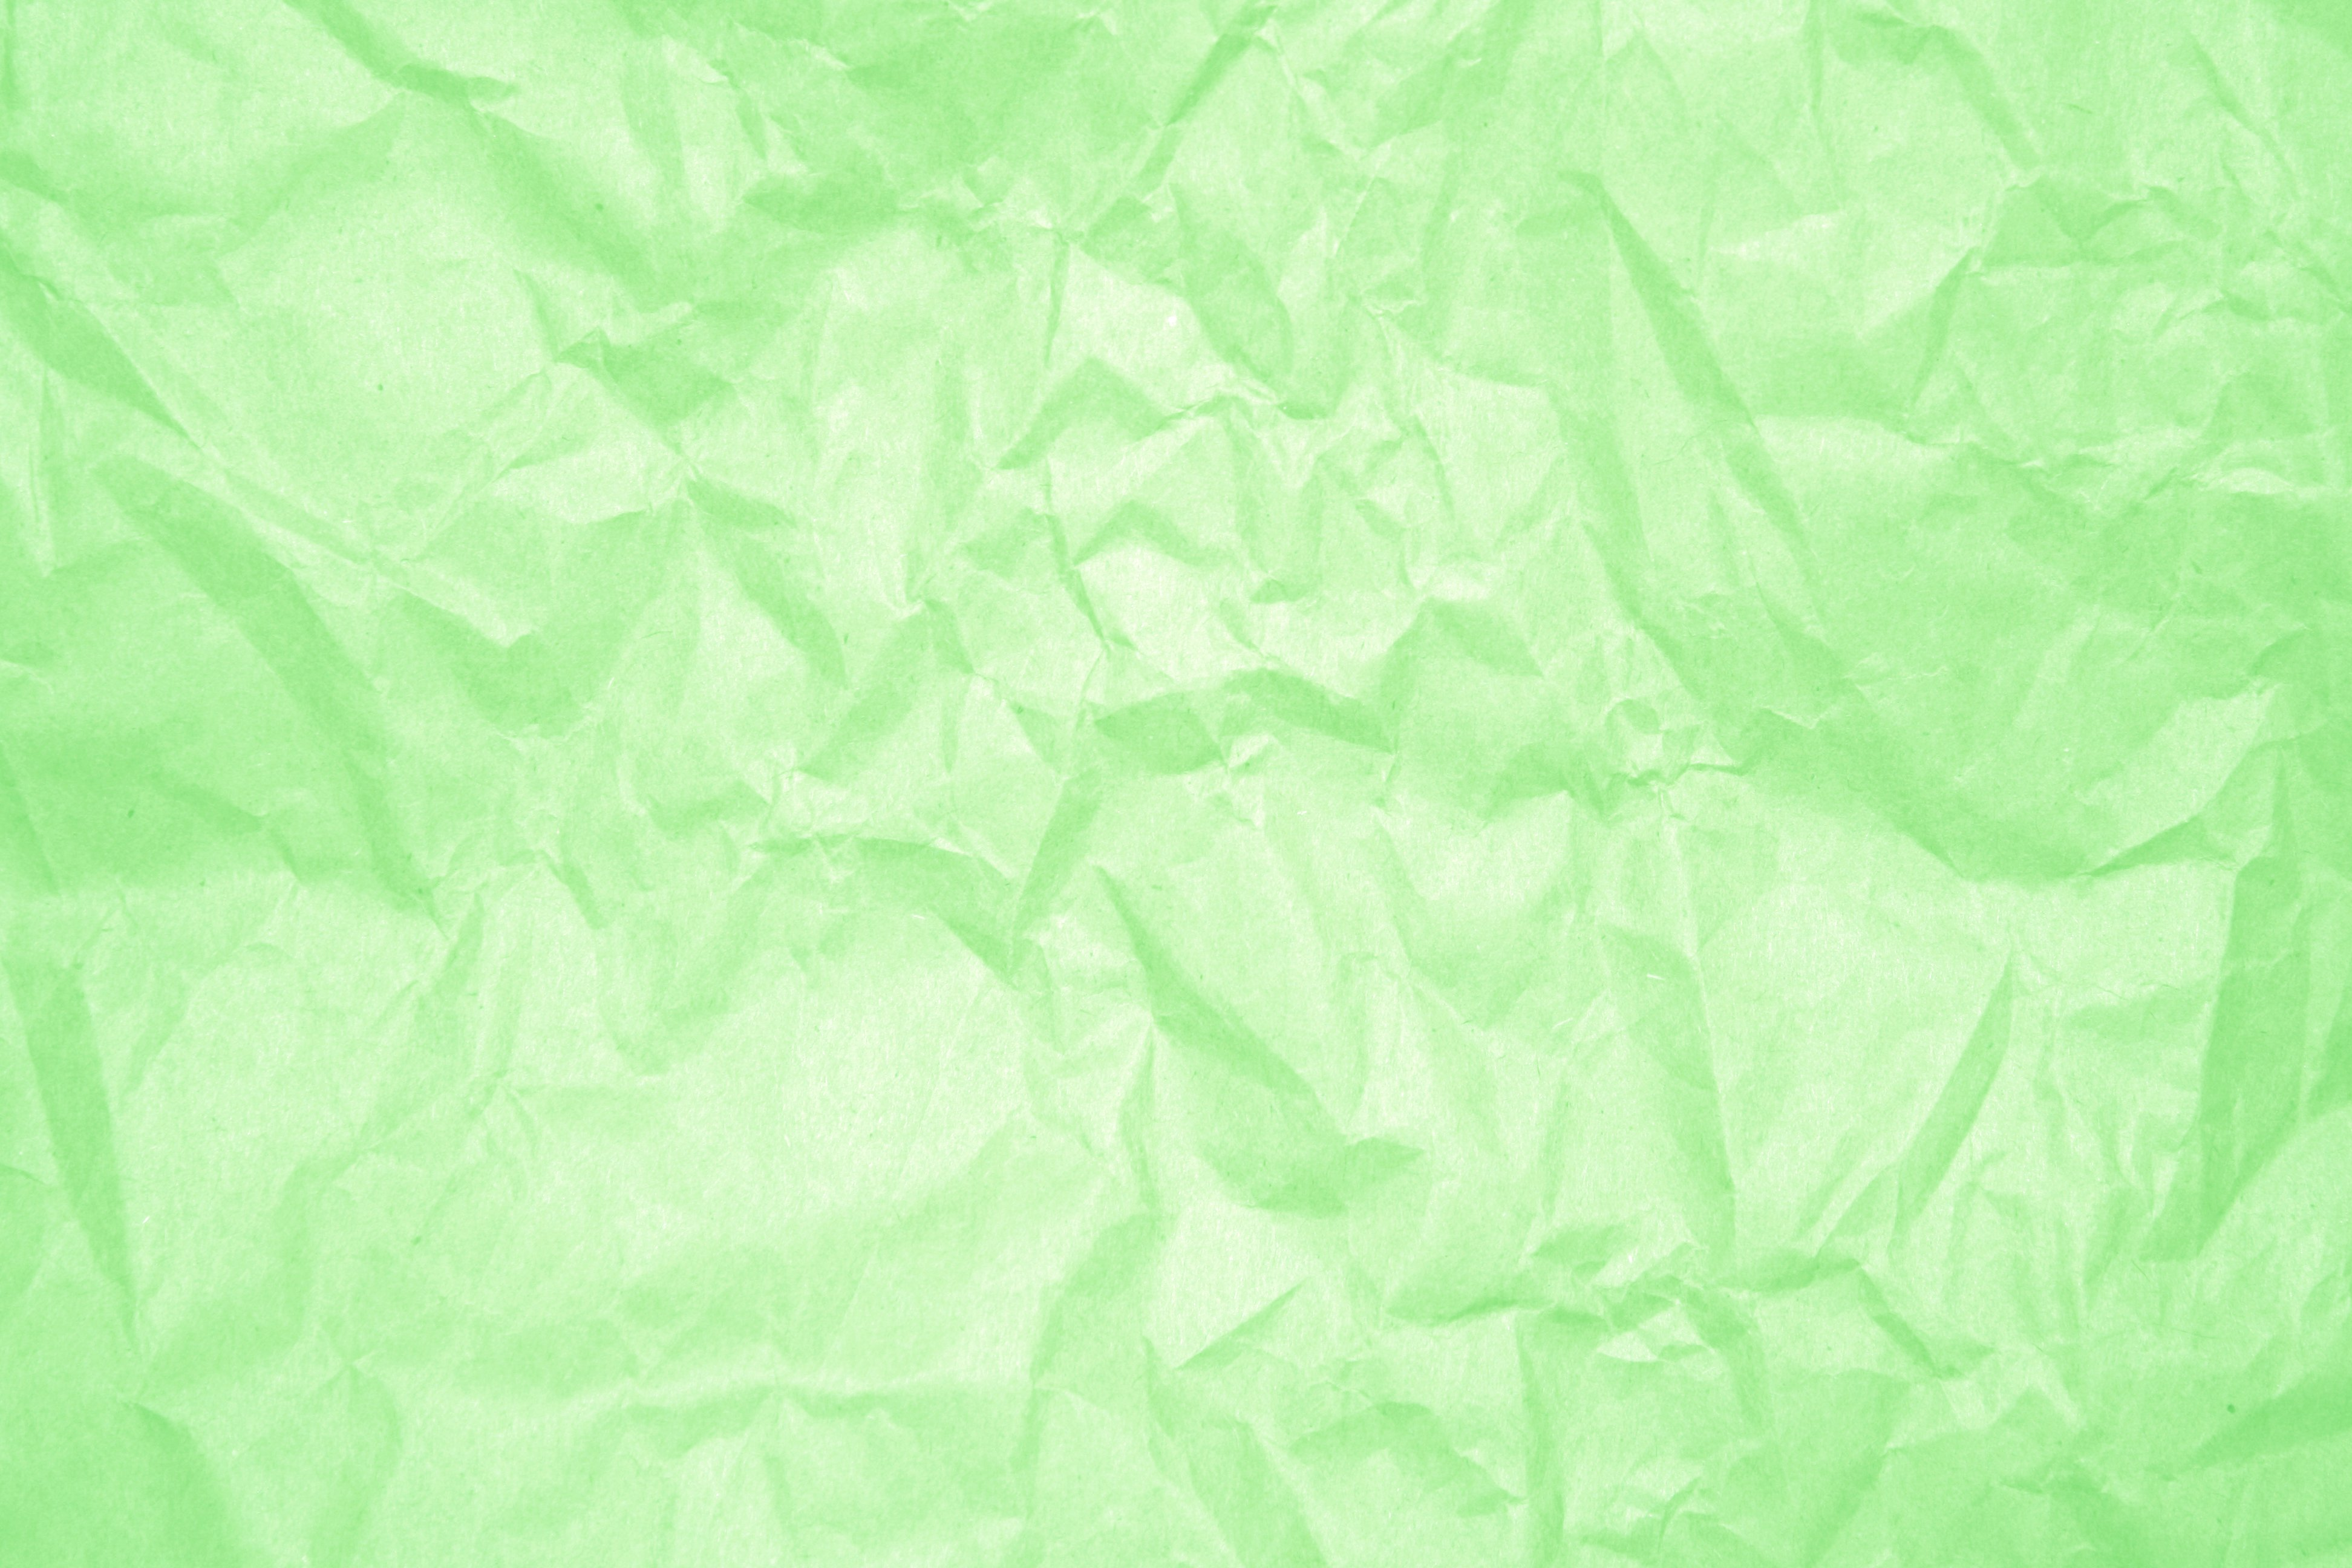 Crumpled Light Green Paper Texture Picture 3888x2592